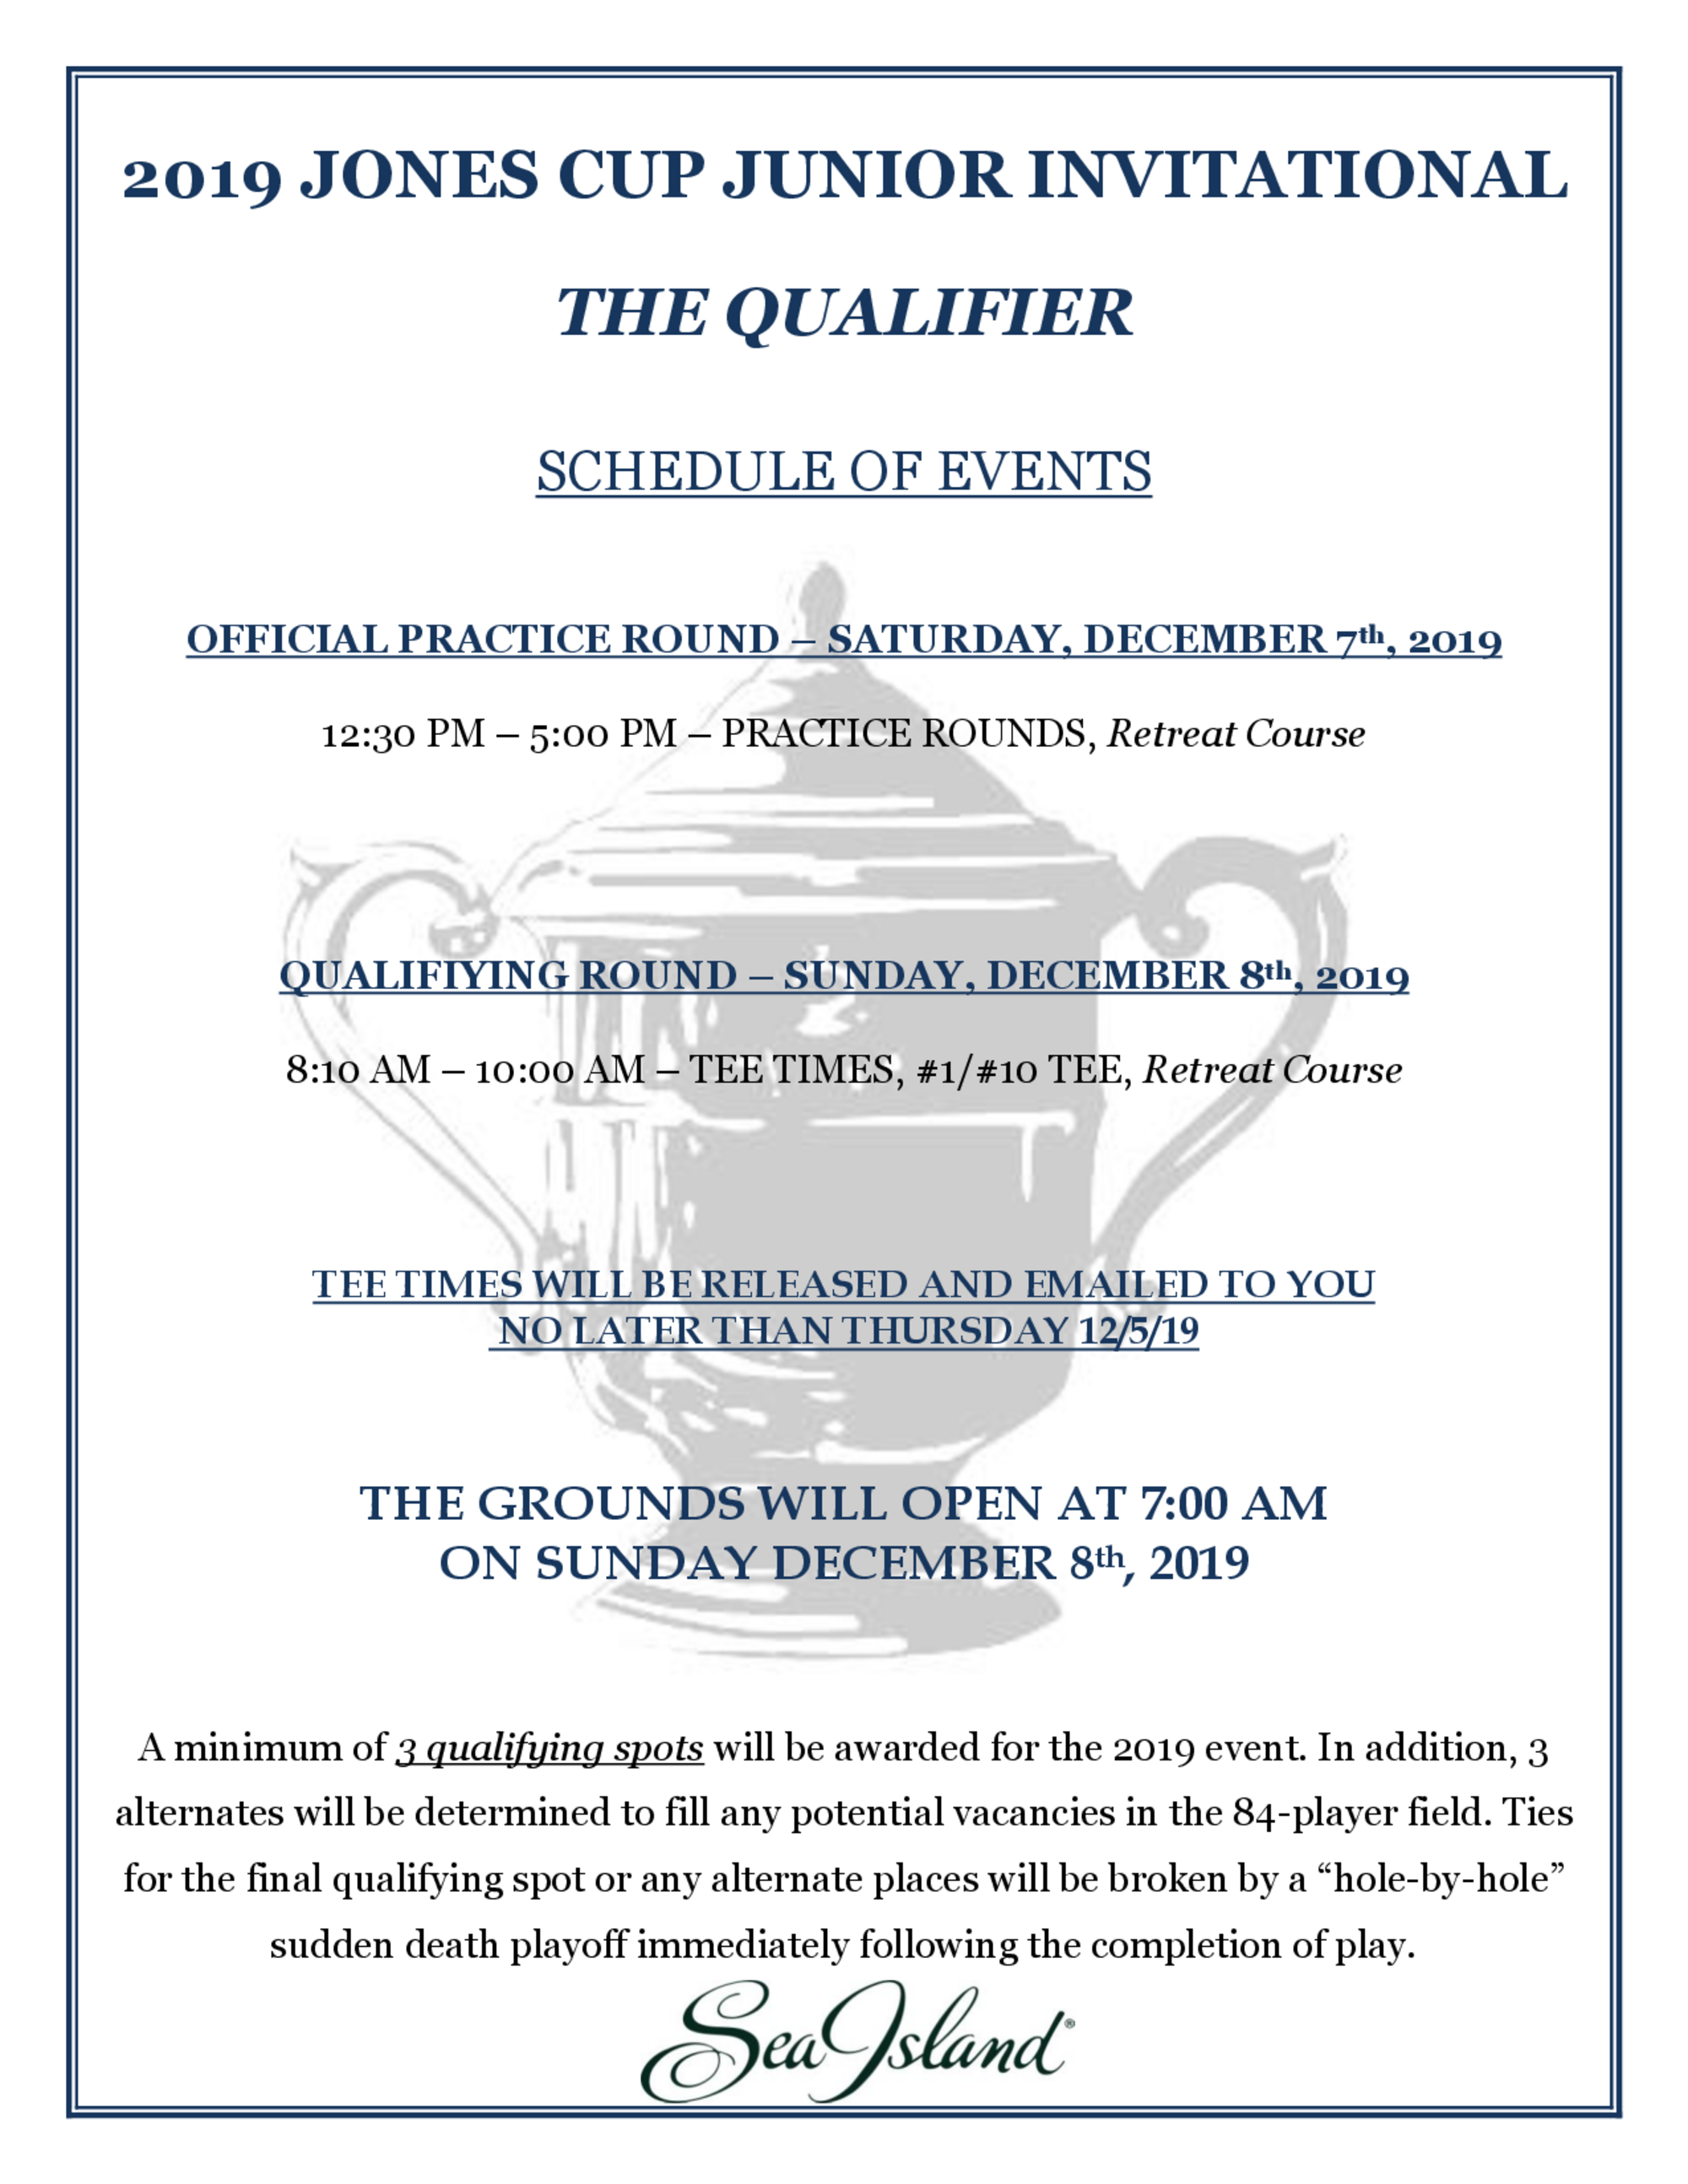 Qualifier schedule of events for golf geninus page 1